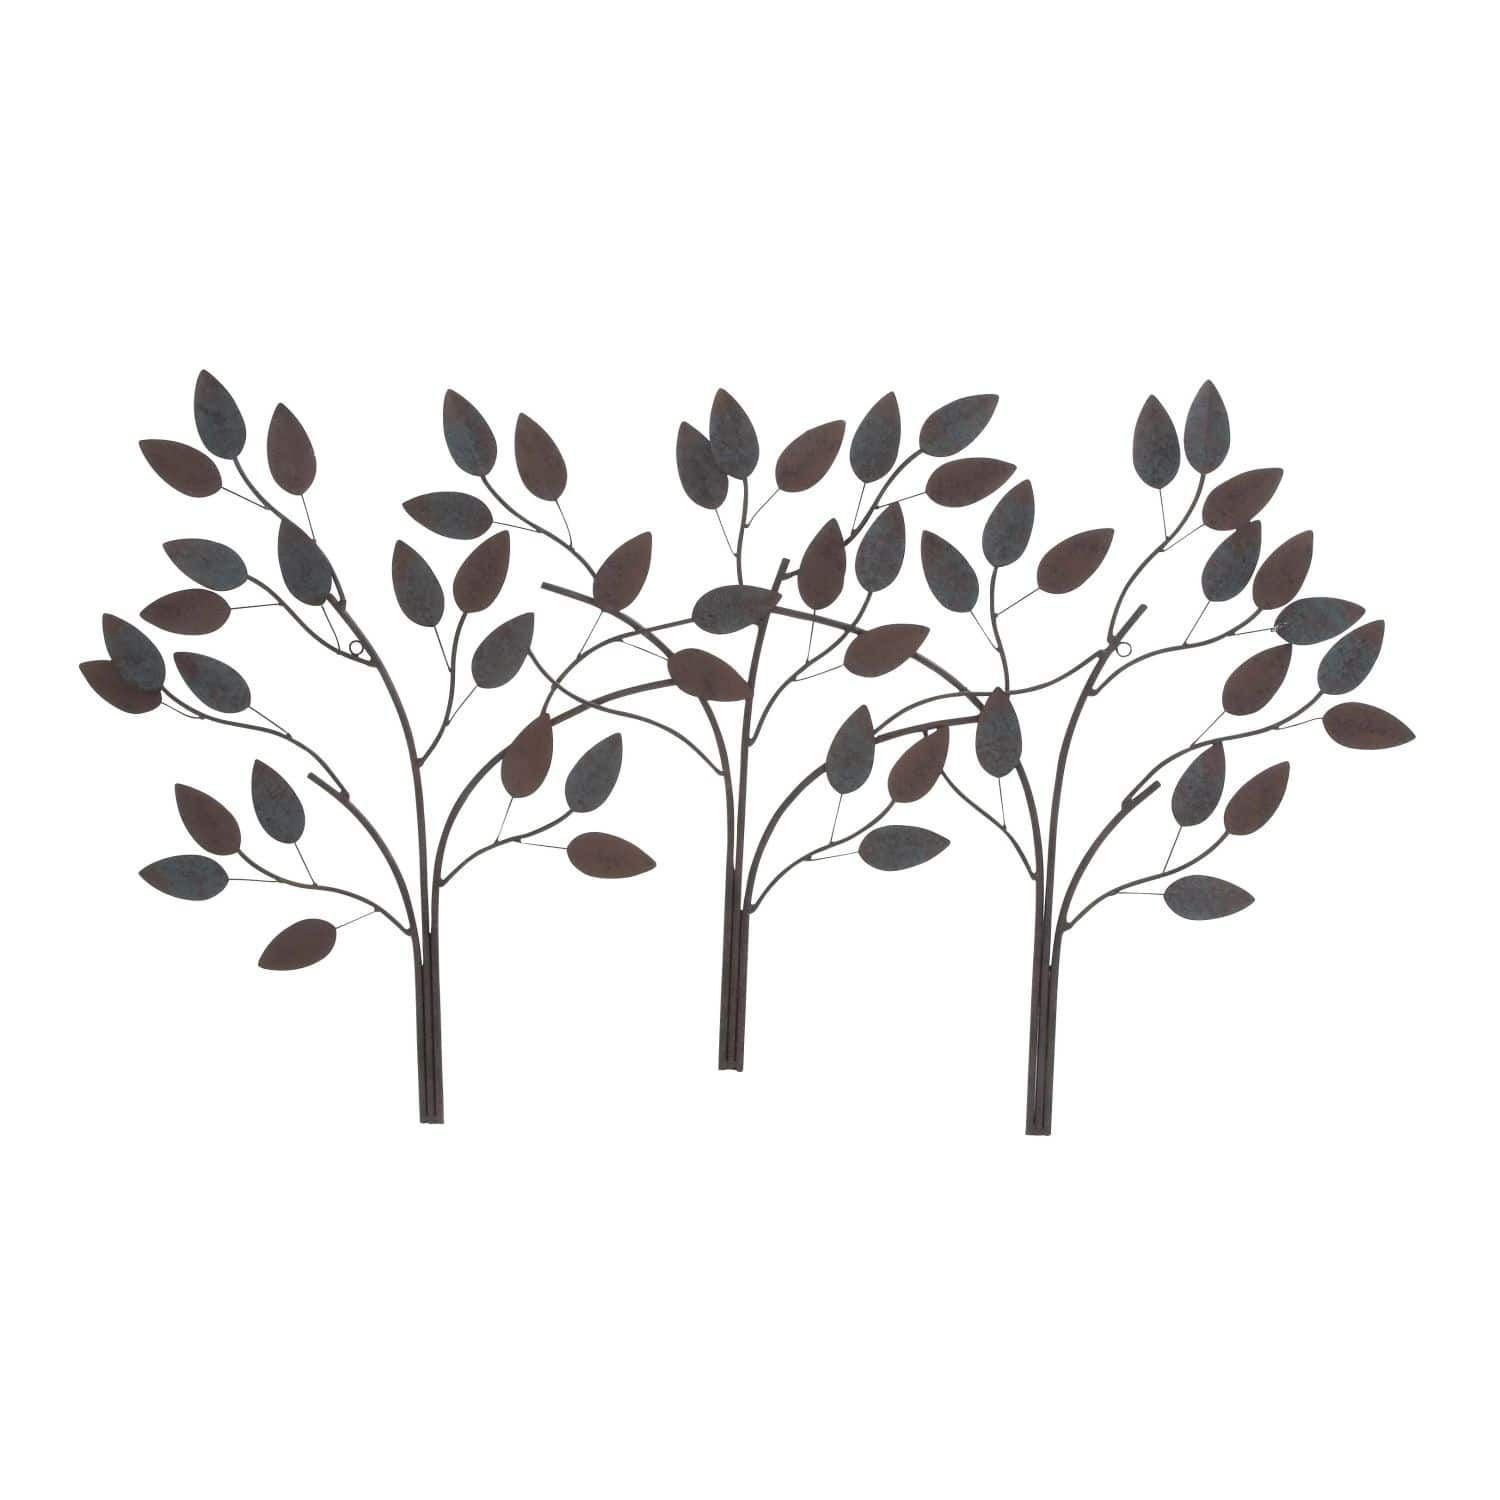 Desford Leaf Wall Decor For Well Liked Studio 350 Metal Leaf Wall Decor 48 Inches Wide, 27 Inches High (View 3 of 20)